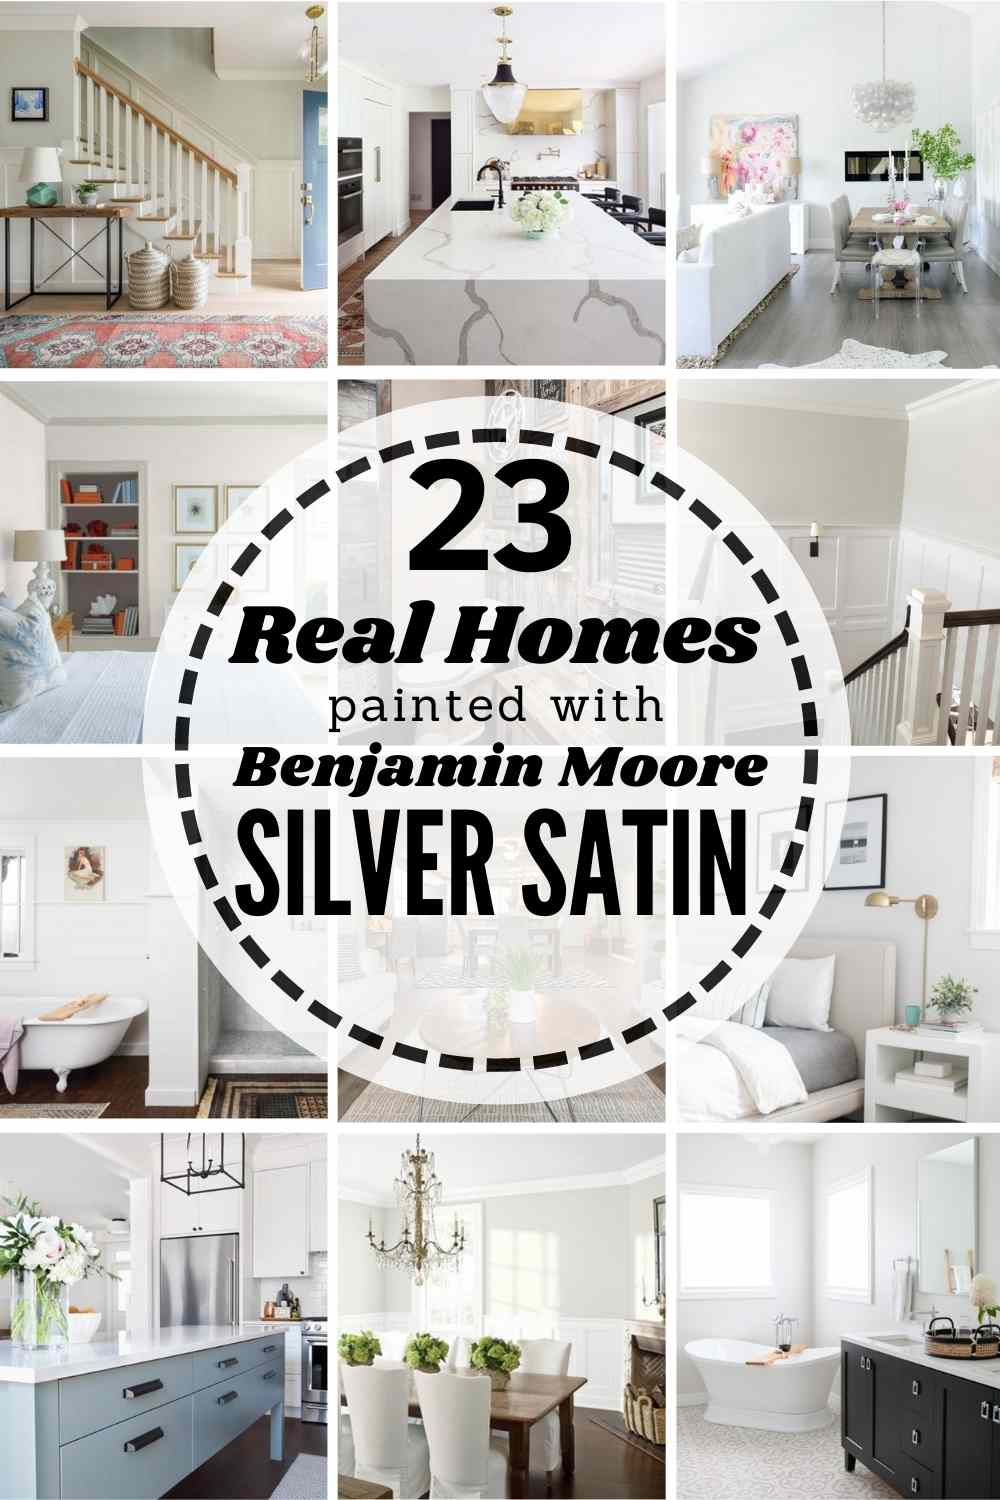 grid image of homes painted Benjamin Moore Silver Satin